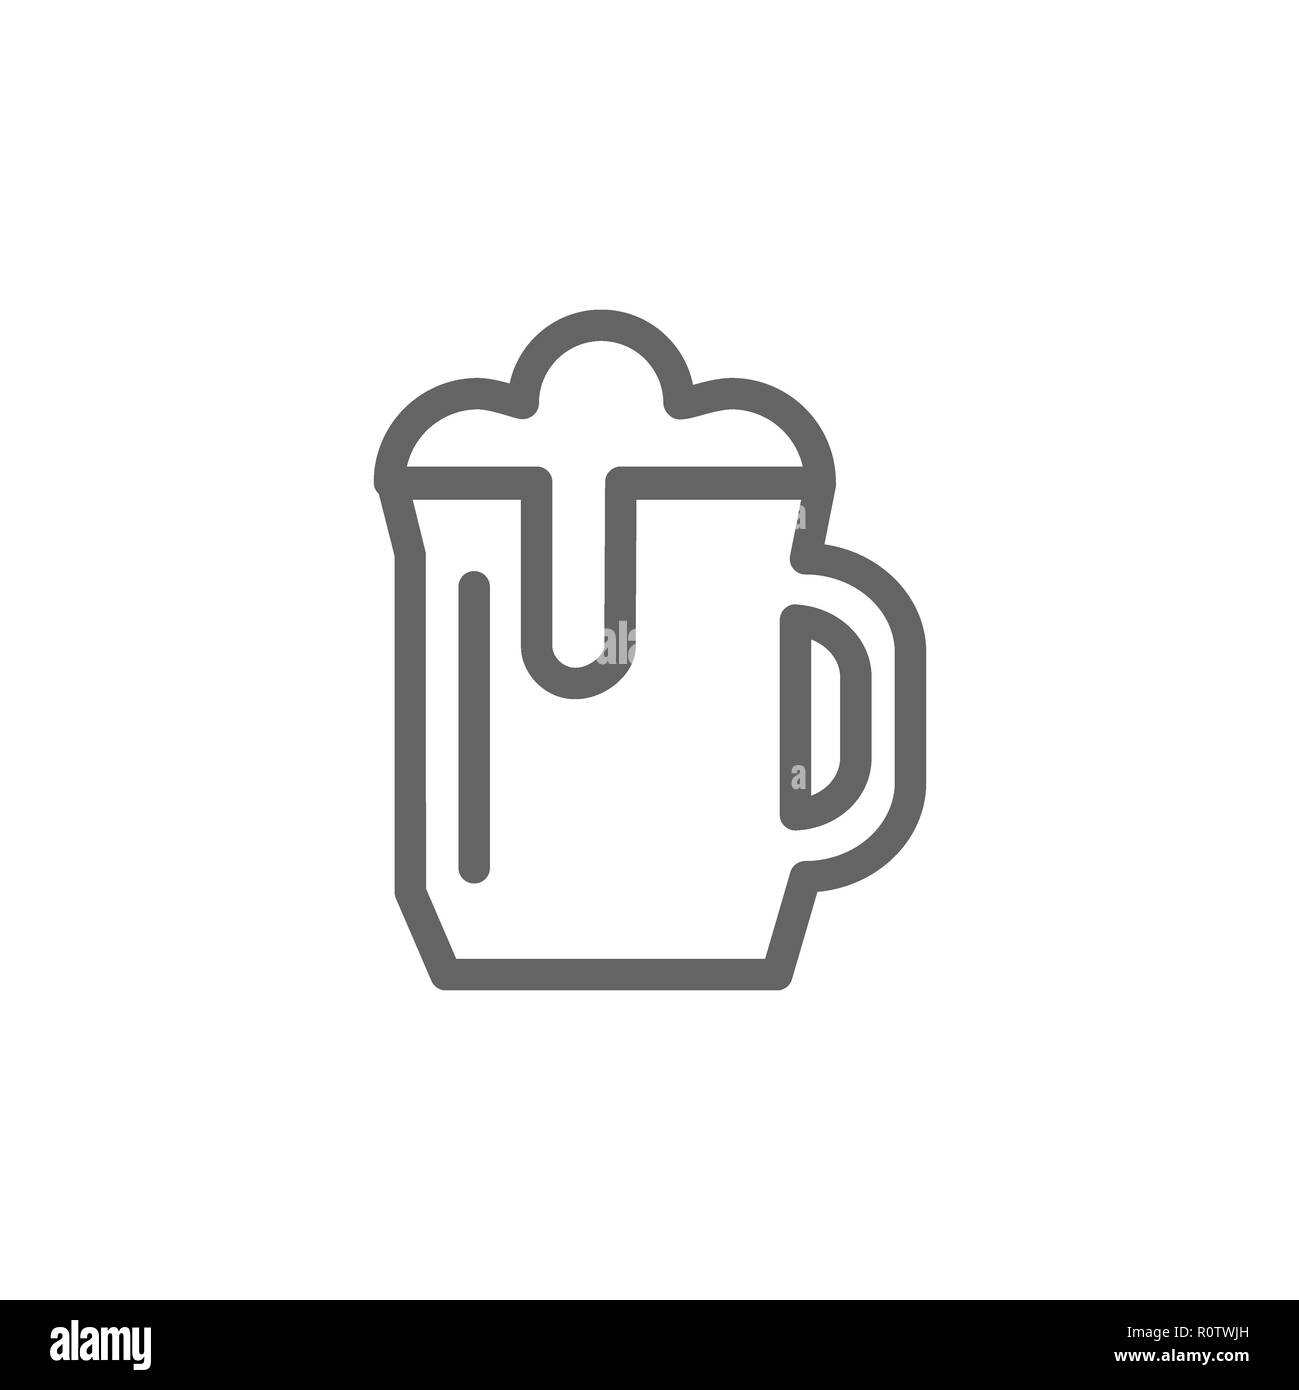 Simple Beer Mug Line Icon Symbol And Sign Illustration Design Isolated On White Background Stock Photo Alamy